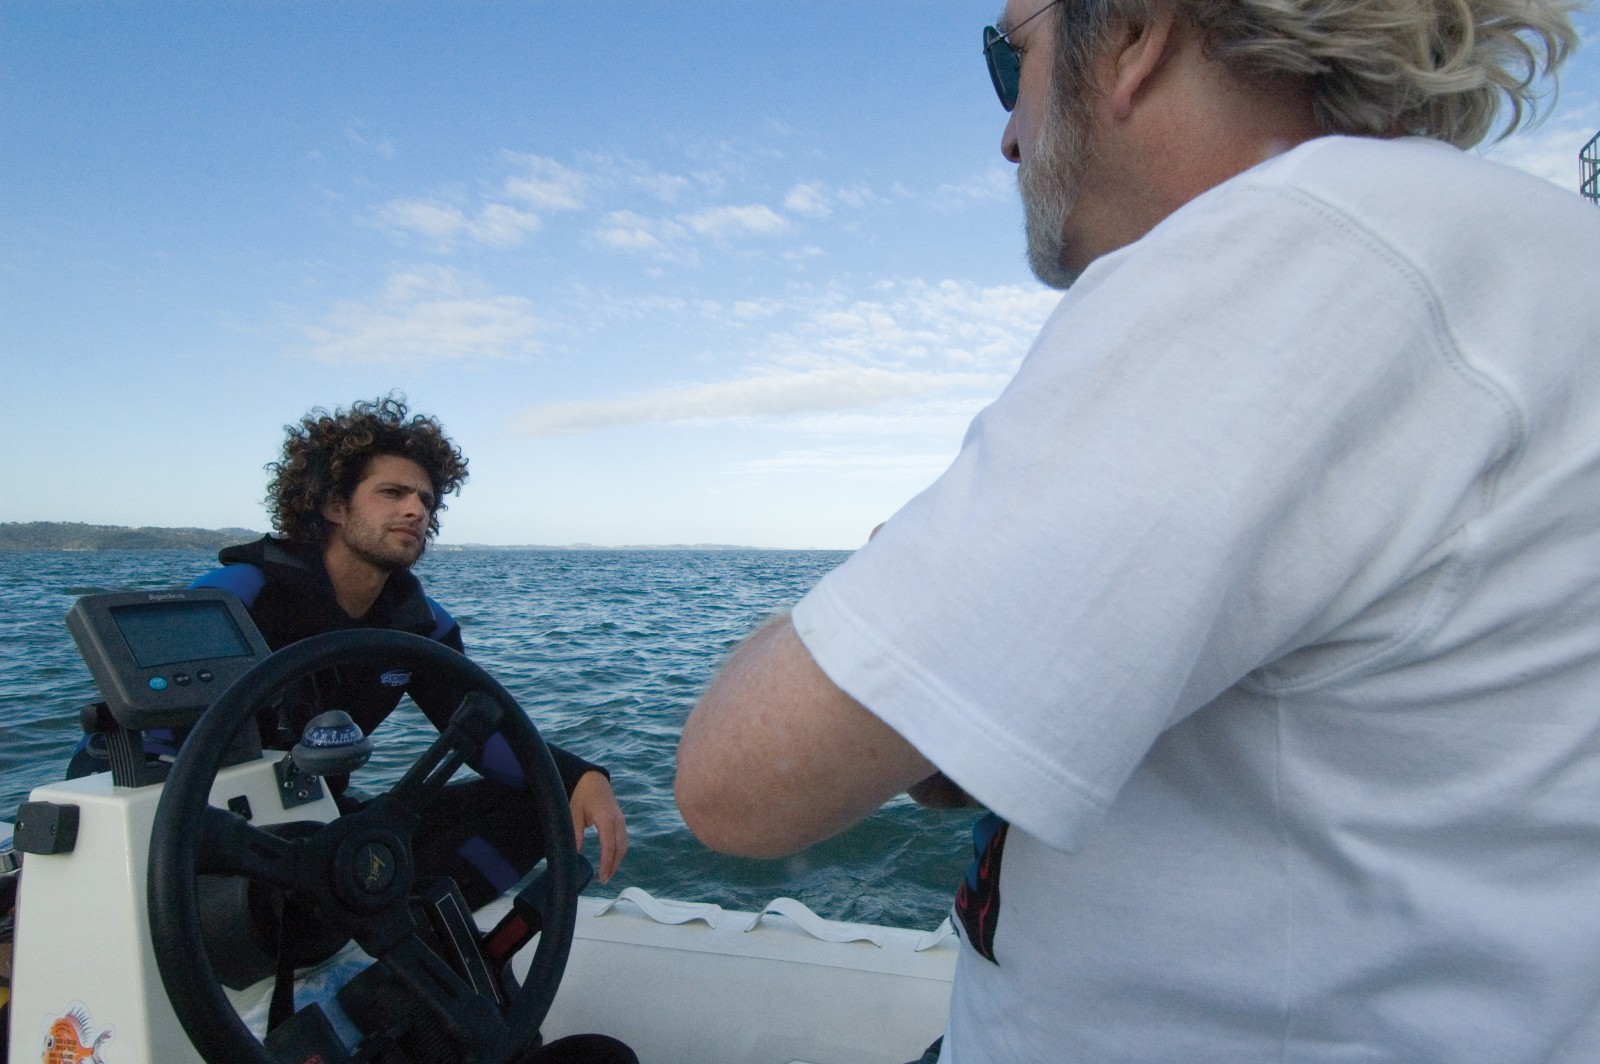 Biologist Michael Richlen and skipper Mike Percy (of the Western Underwater Research Team) wait for the brief window of slack water to retrieve an underwater POD that records the sounds of passing dolphins and whales from near Cornwallis.